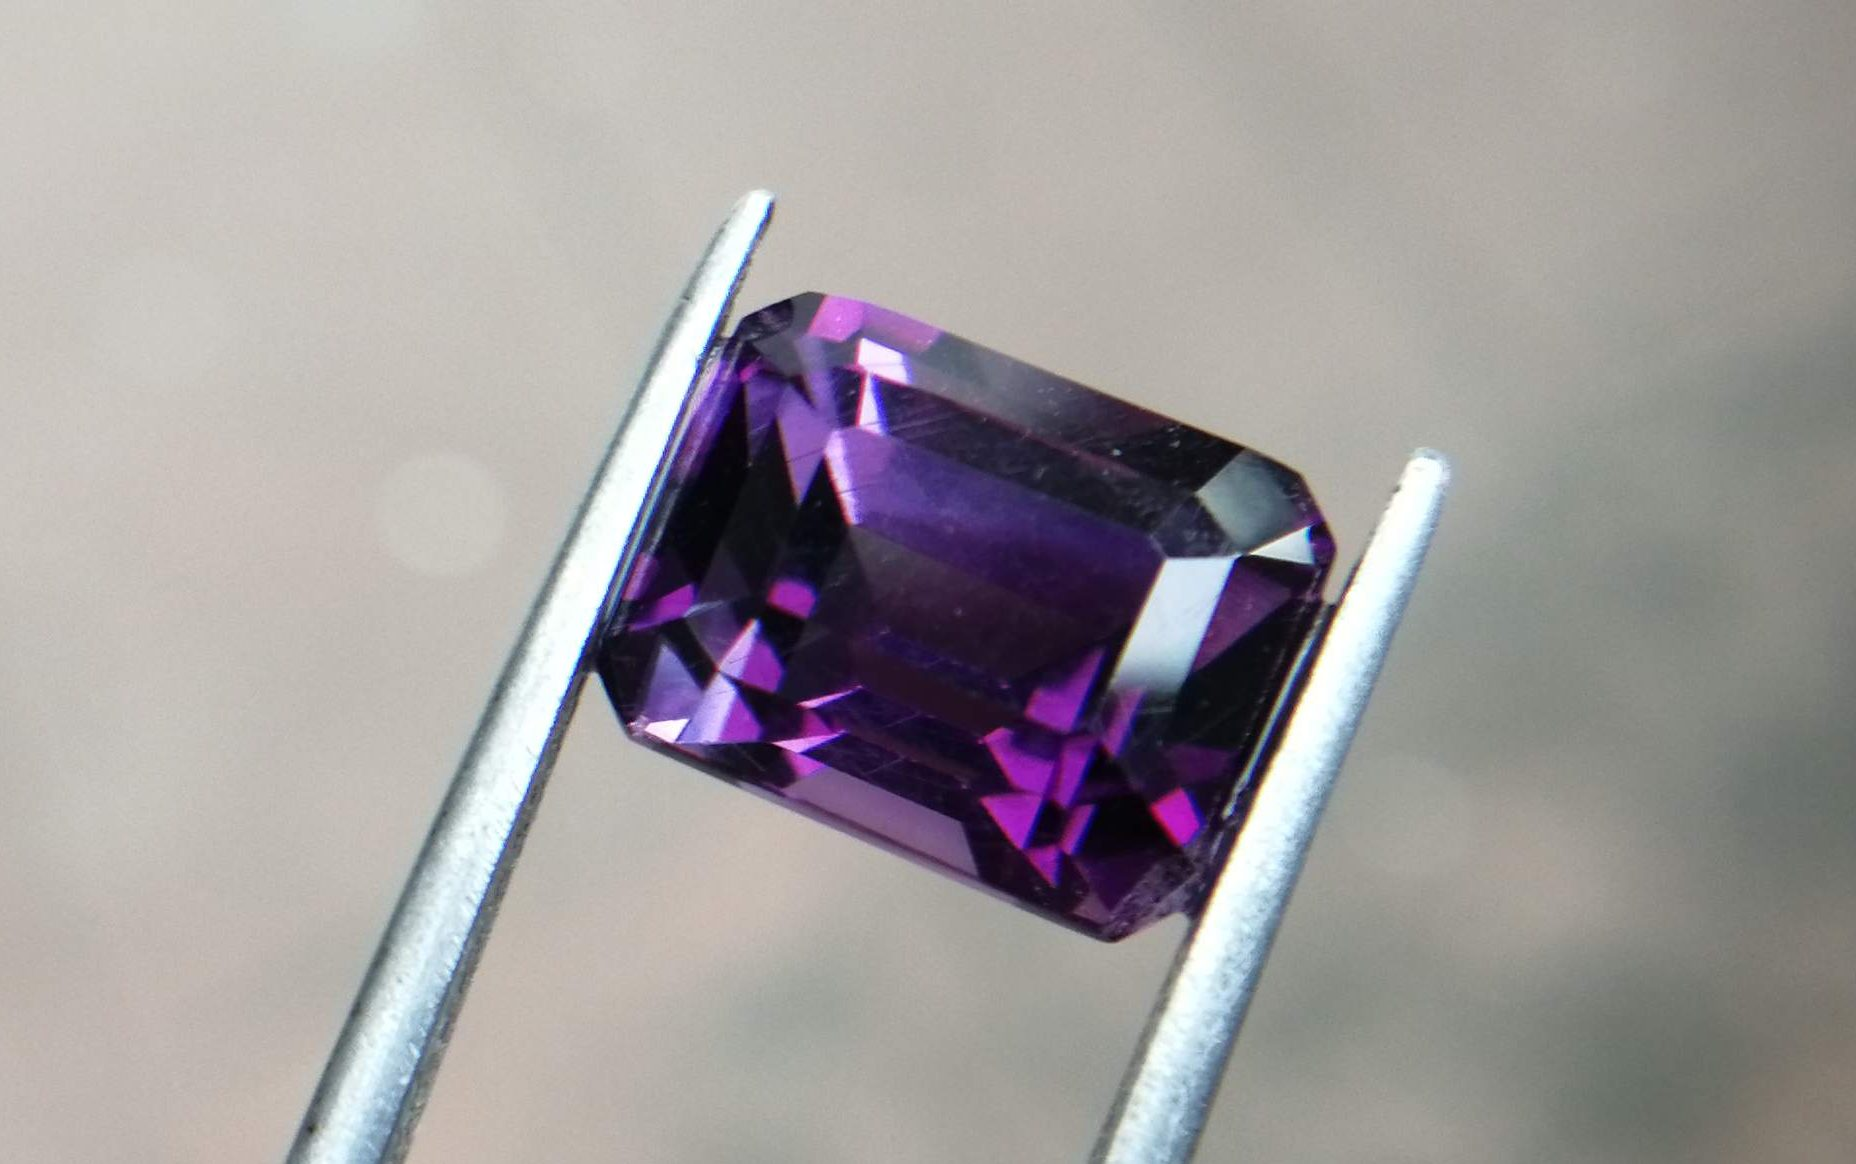 """Colour : Purple Shape : Octagon Weight : 5.35 Cts Dimension : 11.1 x 8.5 x 8.1 mm Treatment : Unheated Clarity : VS Natural Amethyst Amethyst is a violet variety of quartz. It's a birth stone of month February. The name comes from the Koine Greek ἀμέθυστος amethystos from ἀ- a-, """"not"""" and μεθύσκω methysko / μεθύω methyo, """"intoxicate"""", a reference to the belief that the stone protected its owner from drunkenness. Category: Silicate mineral Formula: SiO2 Crystal system: Trigonal Color: Purple, violet Mohs scale hardness: 7 Specific gravity: 2.65 Av Optical properties: Uniaxial (+) Refractive index: nω = 1.543–1.553                 nε = 1.552–1.554 Amethyst can be found in Sri Lanka, Madagascar, Zambia, Zimbabwe, USA, Brazil, Uruguay, Thailand, Turkey, Tanzania, Tajikistan, Switzerland, Sweden, Spain, South Korea, Africa, Russia, Afghanistan, New Zealand, Norway, Nigeria, Namibia, Myanmar, Mozambique, Morocco, Mongolia, Mexico, Kenya, Laos, Japan, Germany, France, Finland, China, Canada, Bulgaria, Cambodia, Australia, Belgium. Amethyst has healing powers to help with physical ailments, emotional issues, and in Energy Healing and Chakra balancing   Amethyst boosts the production of hormones, and stimulates the sympathetic nervous system and endocrine glands to optimum performance. It supports oxygenation in the blood, and aids in treatments of the digestive tract, heart, stomach, and skin.    The therapeutic uses of Amethyst have a long and well-documented history. Amethyst crystal therapies are primarily associated with physical ailments of the nervous system, the curing of nightmares and insomnia, and balancing the crown chakra. It's also excellent crystal for meditation to open Crown Chakra energies."""